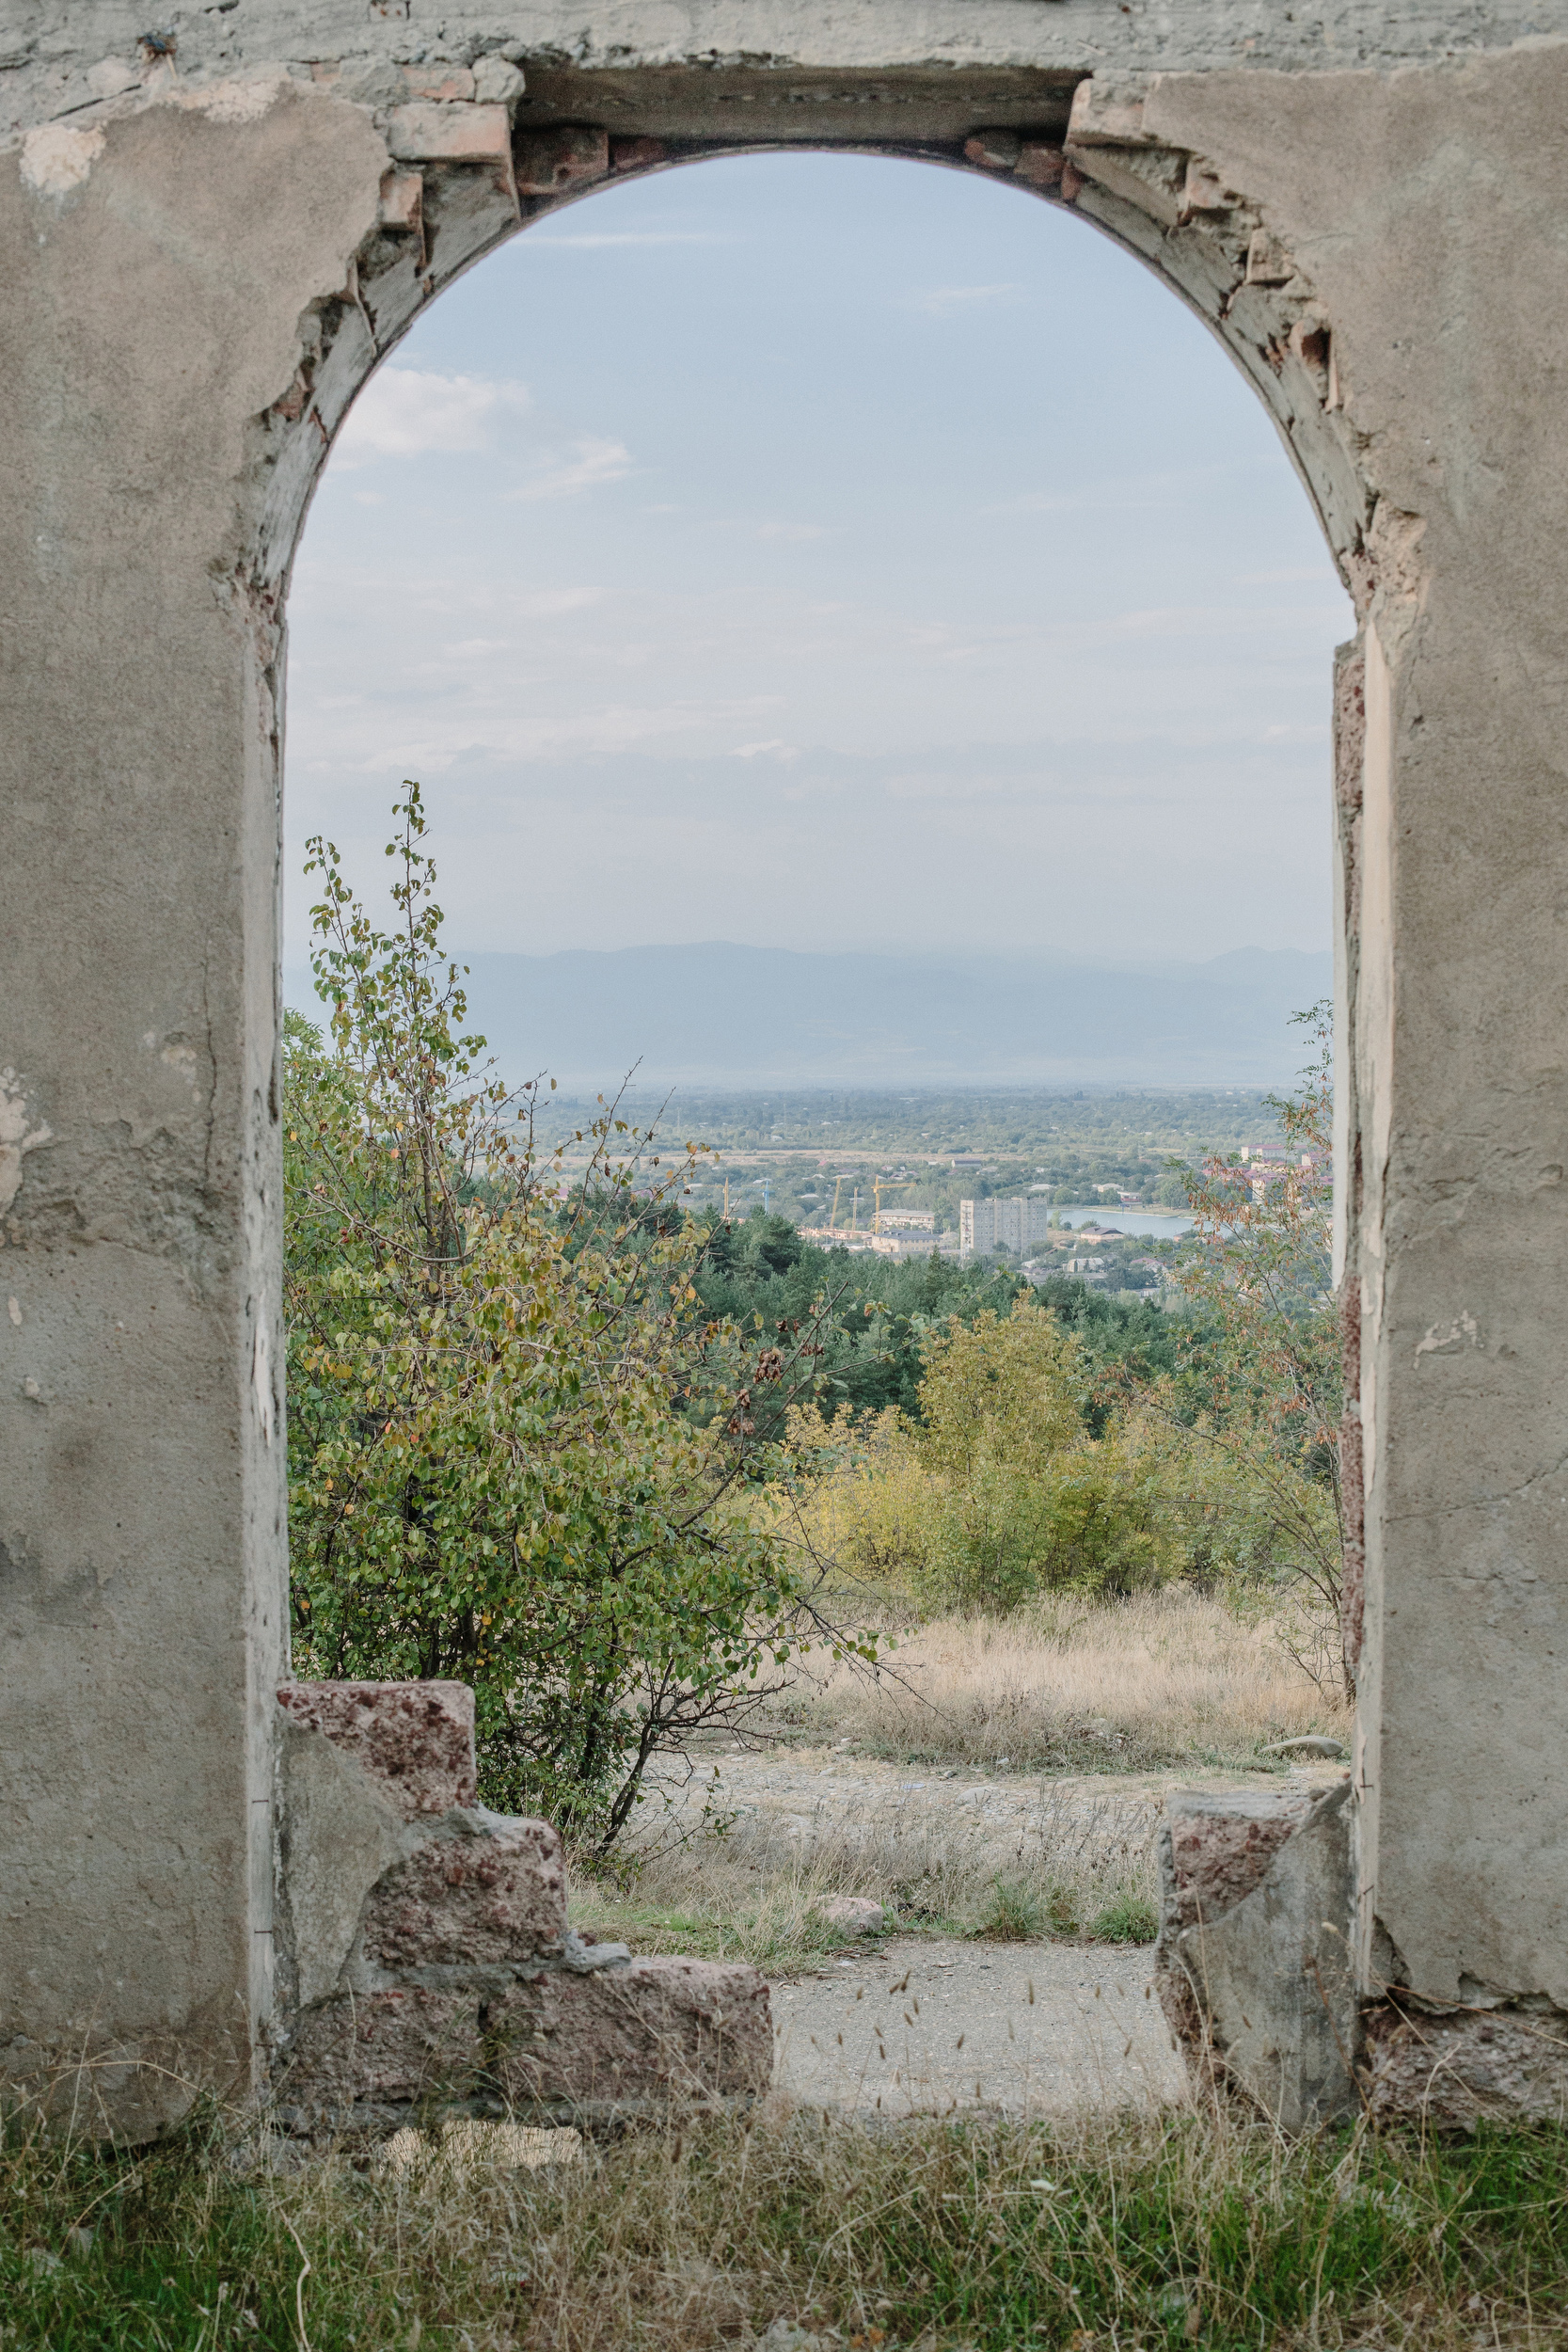 A view of Tskhinvali from a ruined building during the first war with Georgia. MUST CREDIT: Photo for The Washington Post by Ksenia Ivanova